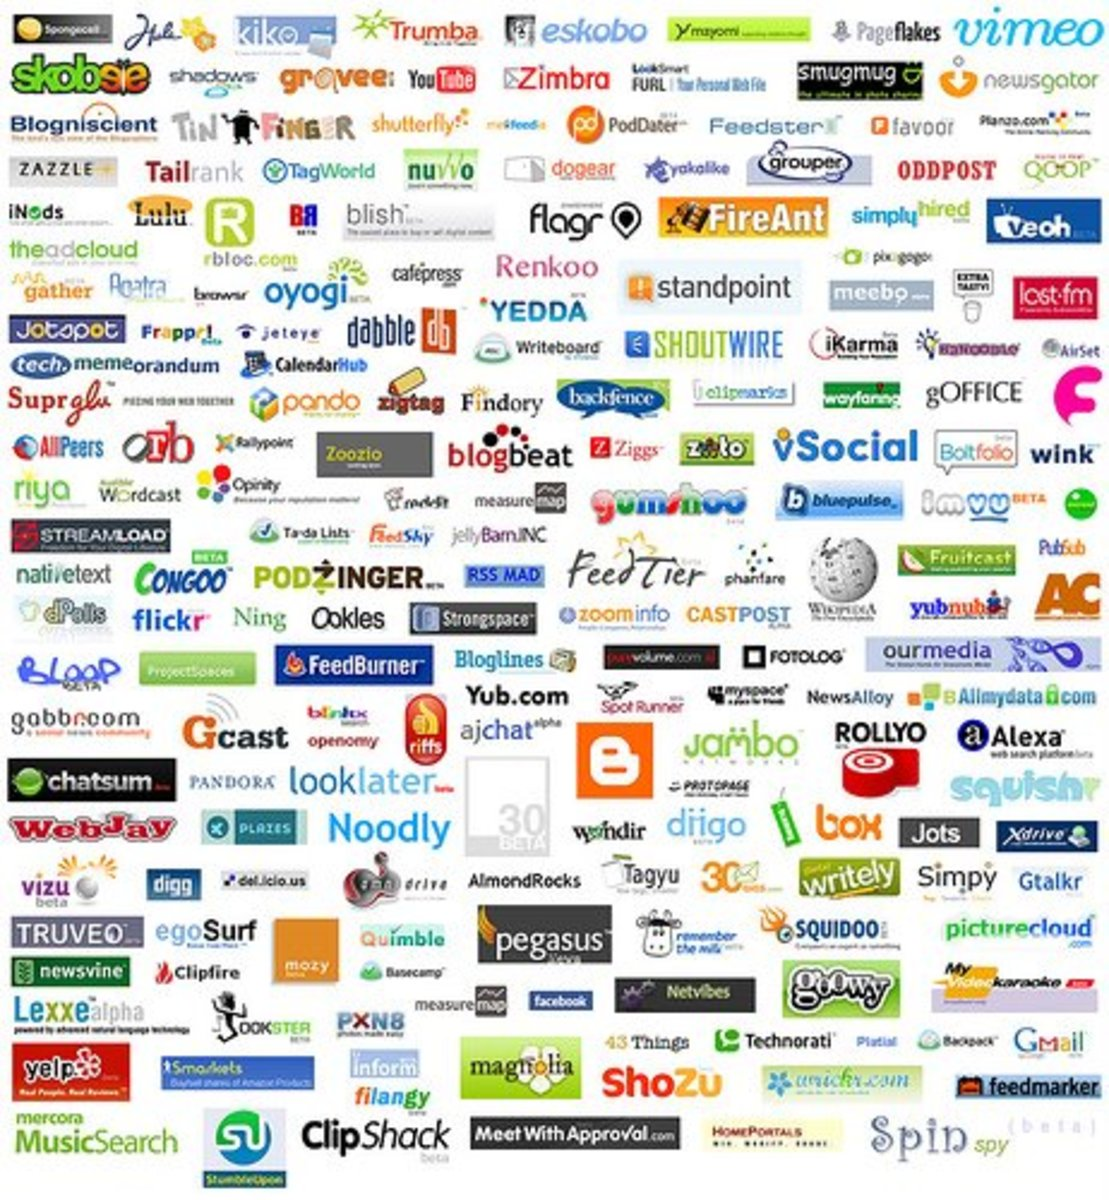 This aggregation of Web 2.0 logos has been floating aound the intrnet today. Most of these companies are unknown. The question becomes, how much that is on the Web we do not know, maybe, some are making les profit because there are so many, or not